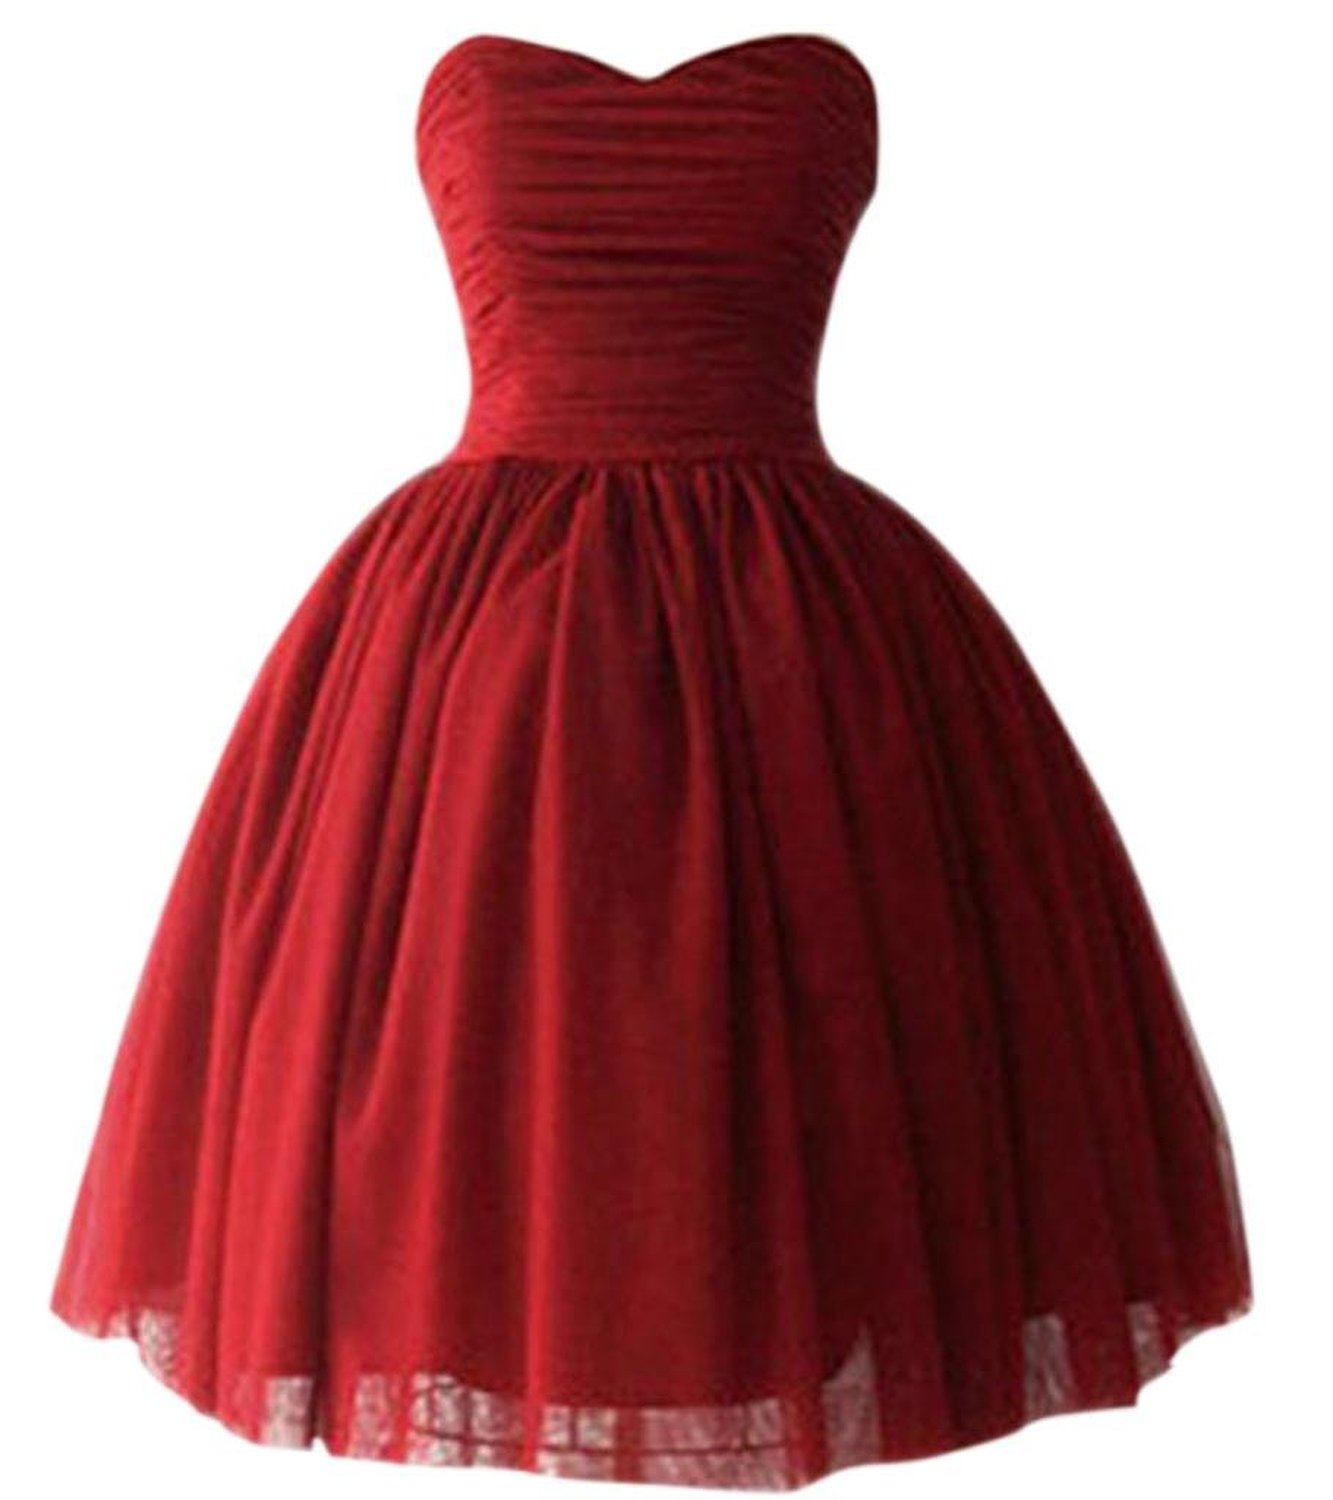 Prettydresses women 39 s short burgundy wedding party dress for Amazon cheap wedding dresses